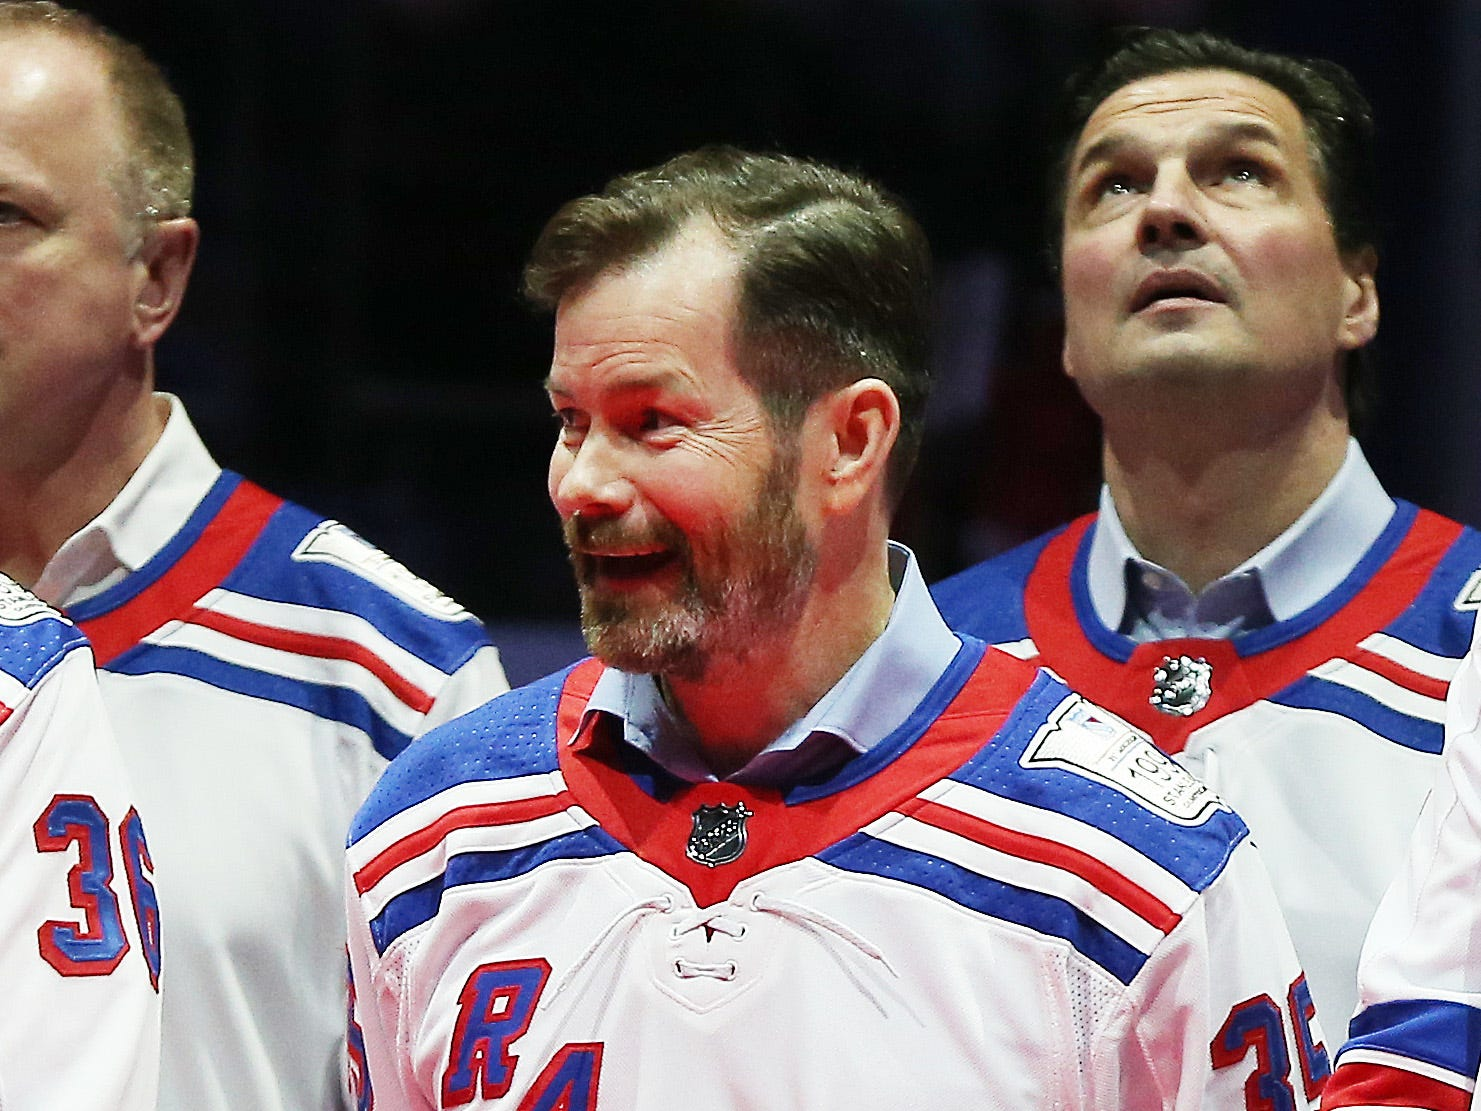 Feb 8, 2019; New York, NY, USA; Former New York Rangers goaltender Mike Richter looks on during the ceremony honoring the 1994 Stanley Cup Championship New York Rangers team at Madison Square Garden.